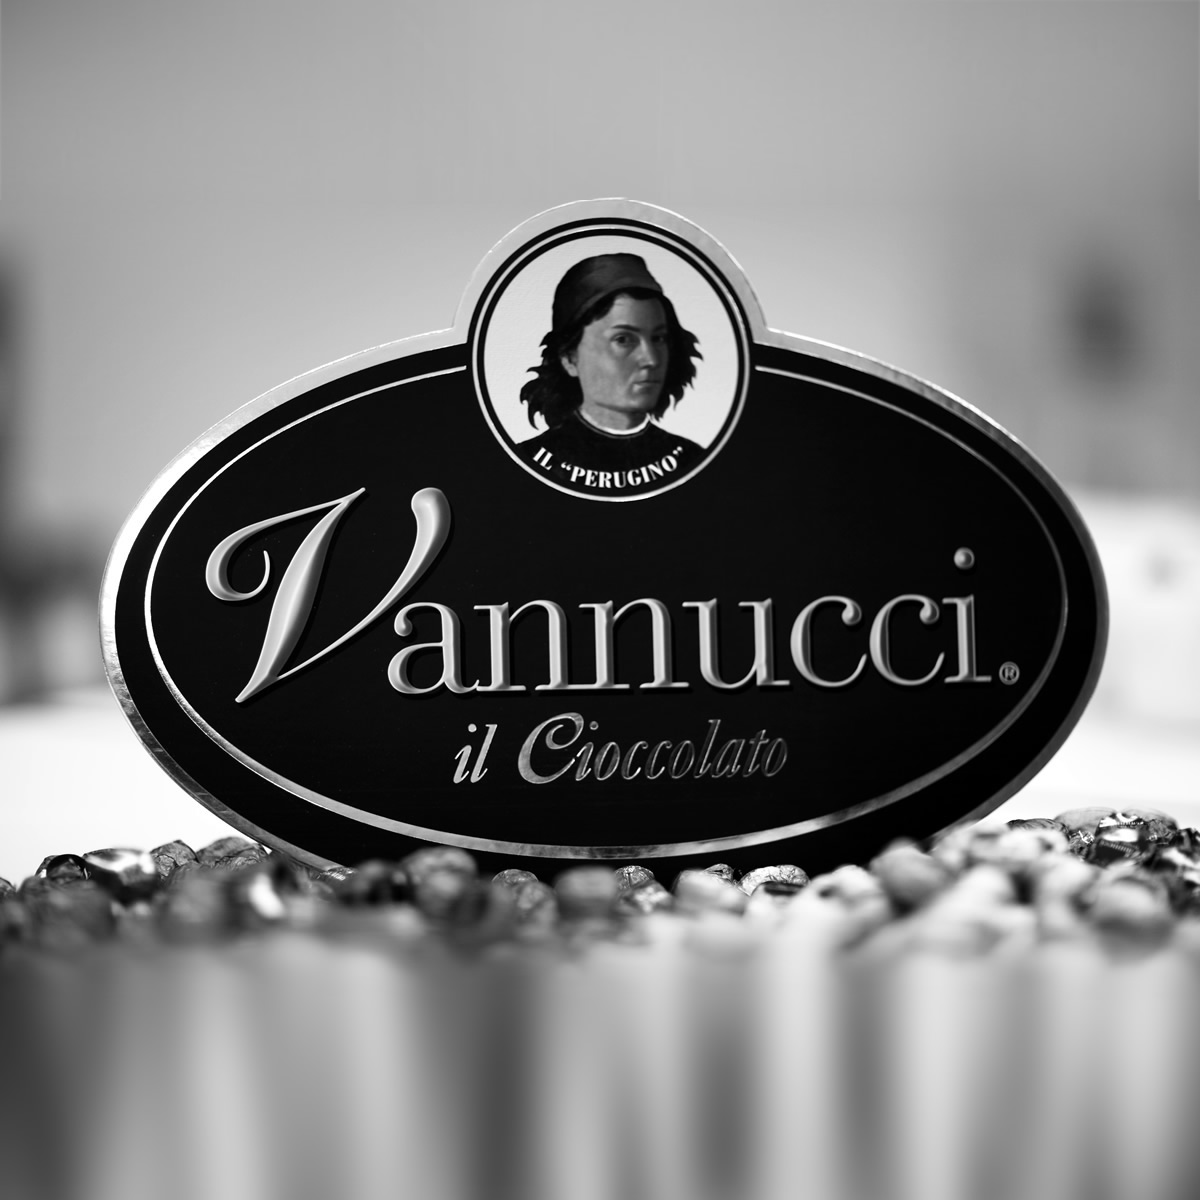 Vannucci is passion for the real chocolate